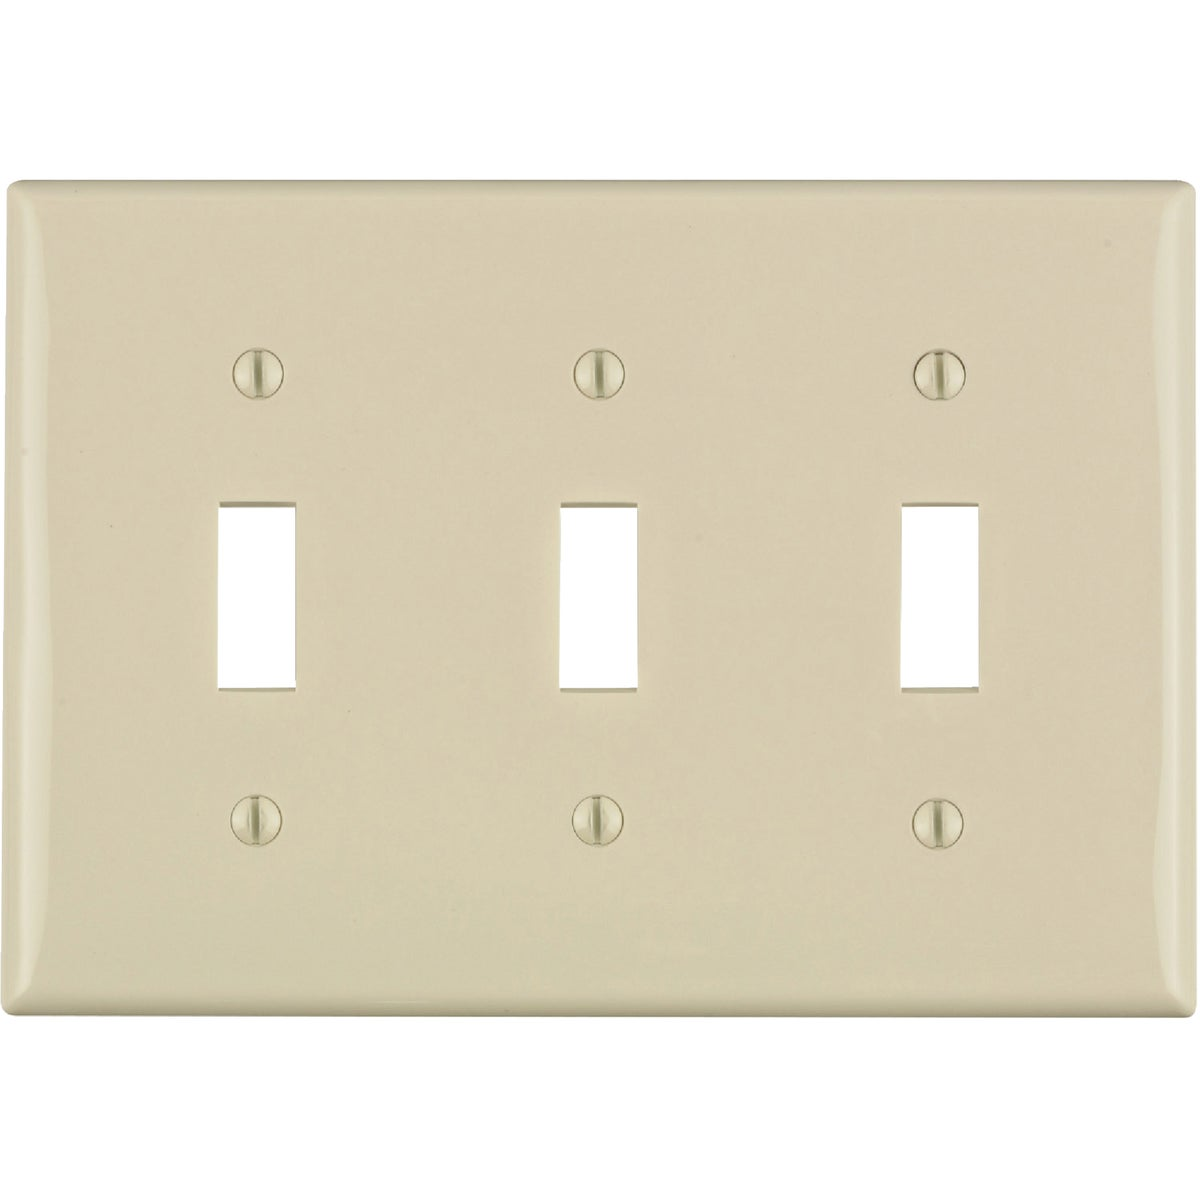 LT ALM 3TGL WALLPLATE - 011-80711-OOT by Leviton Mfg Co